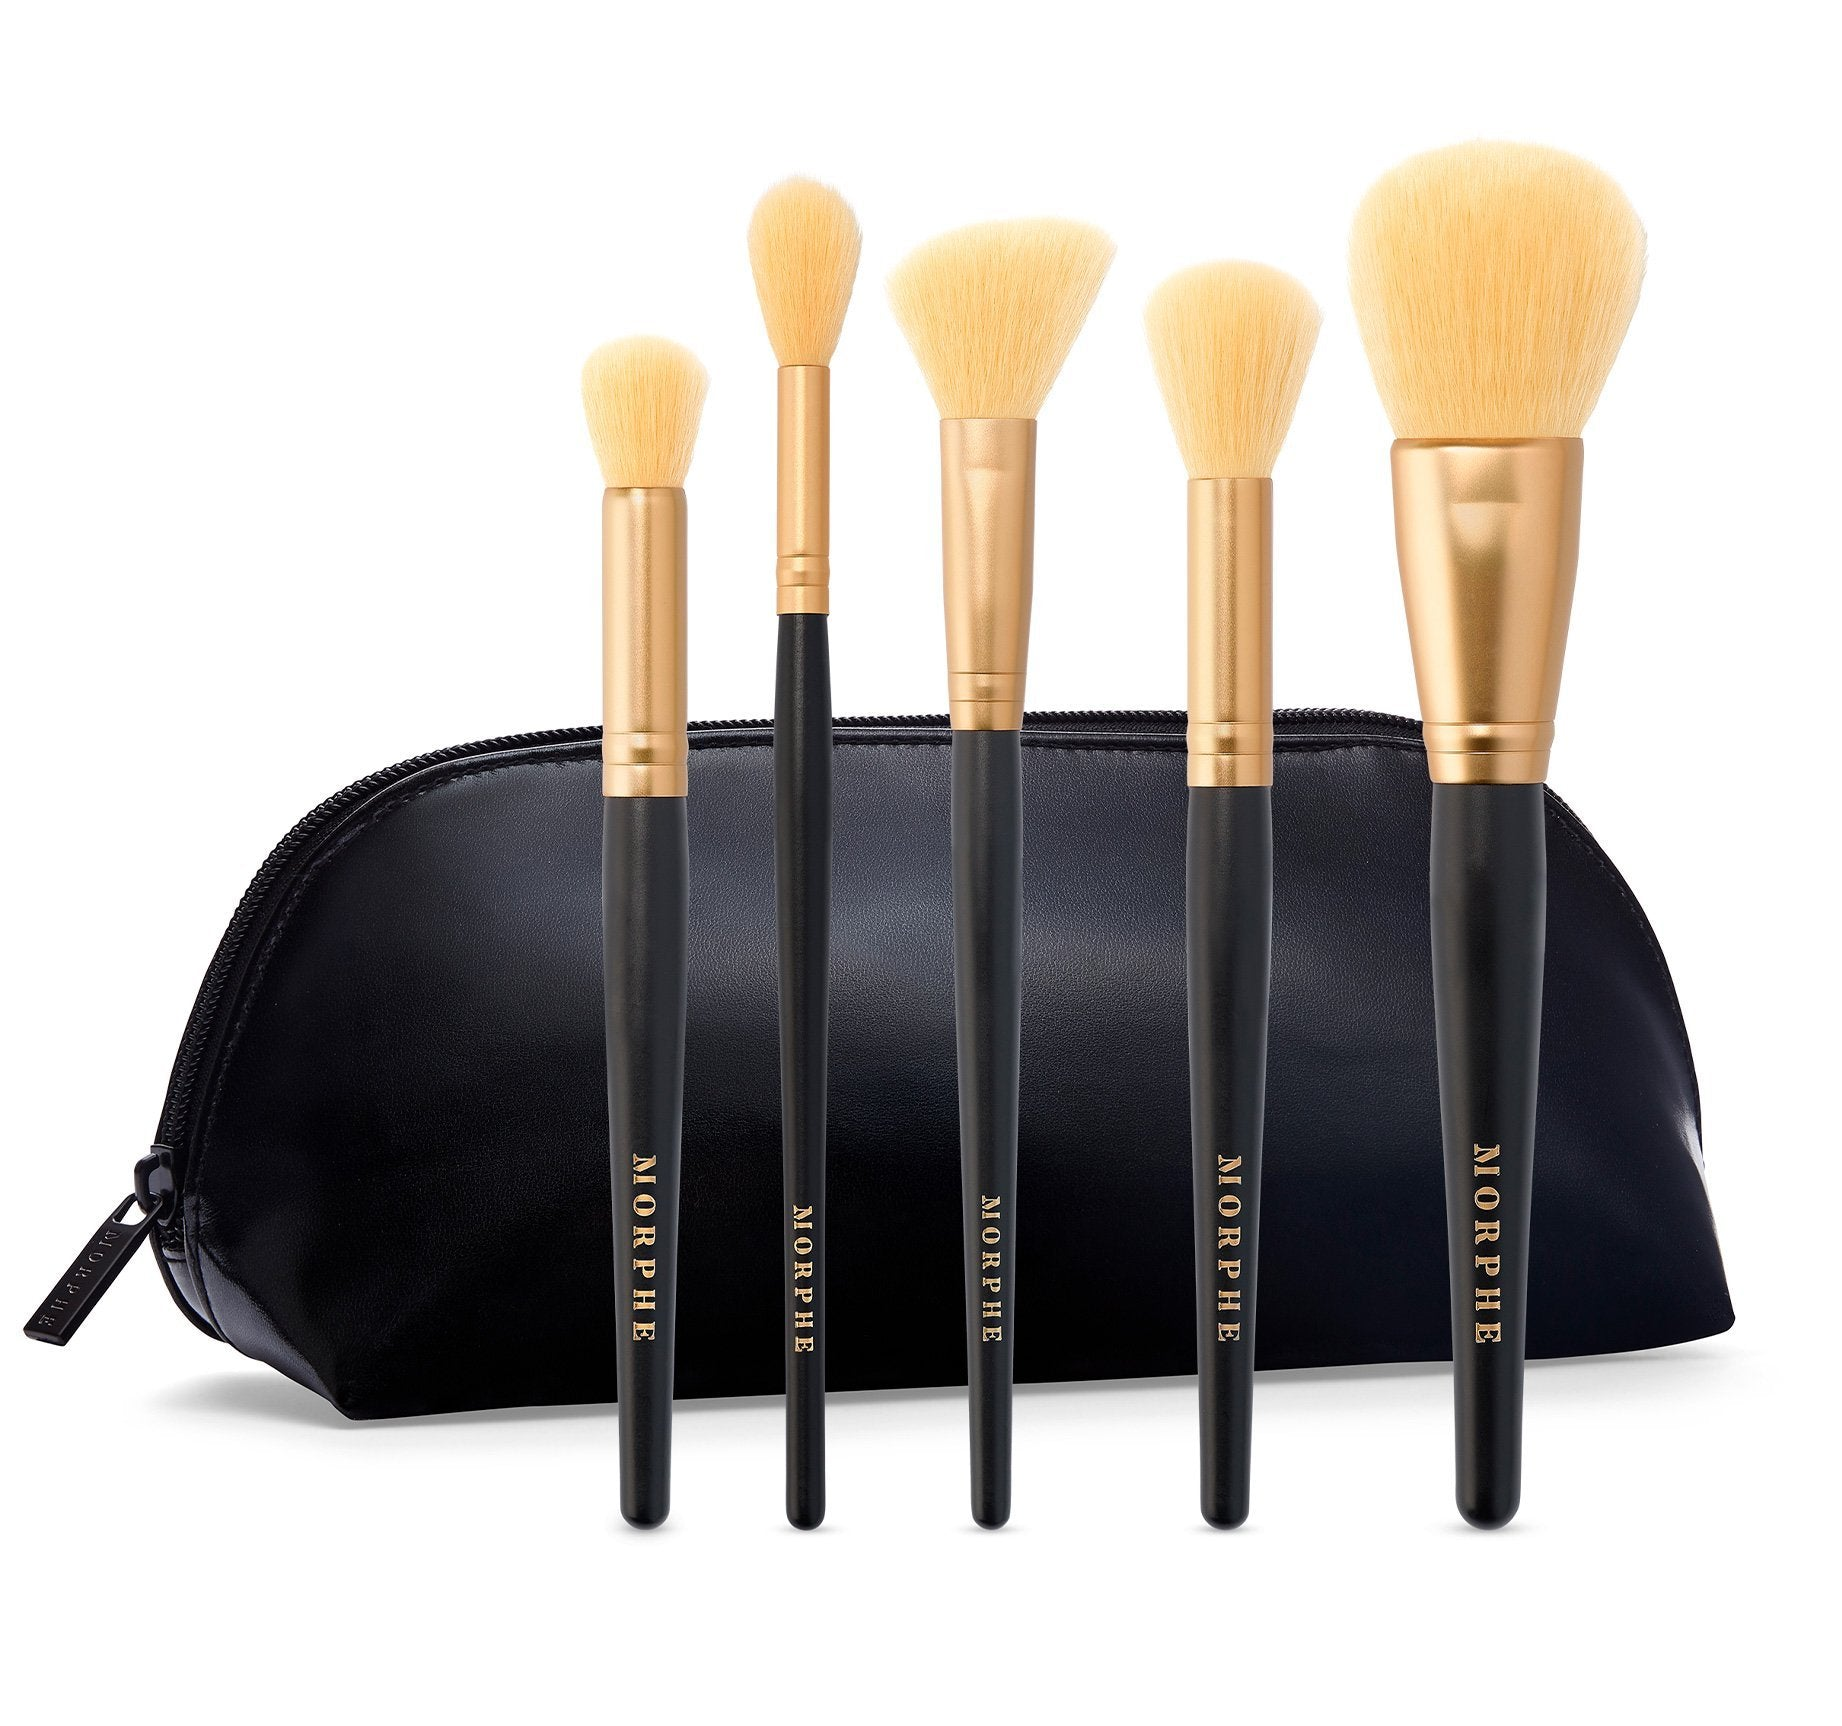 COMPLEXION CREW FACE BRUSH COLLECTION, view larger image